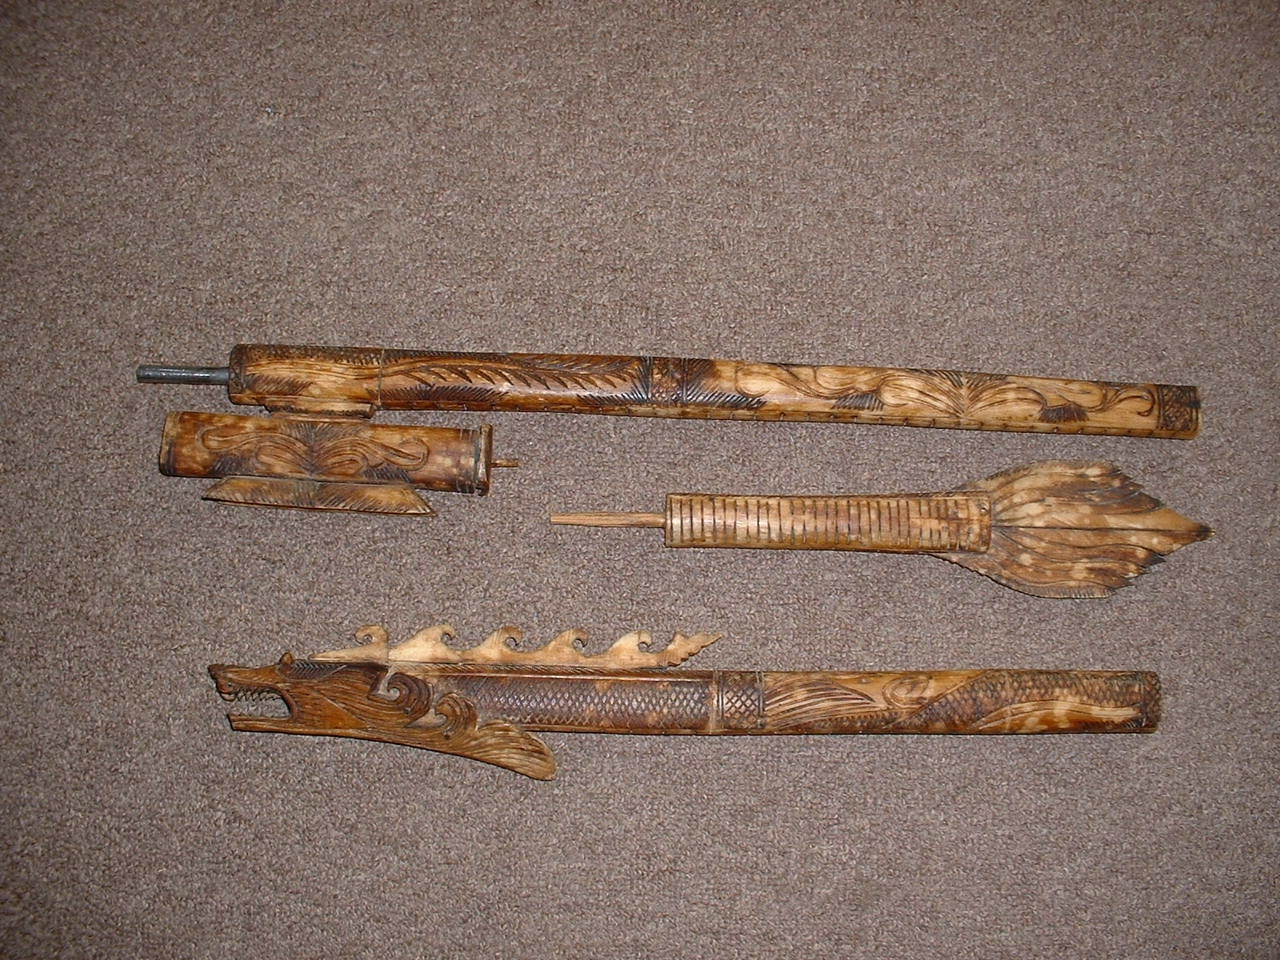 Borneo Bone Dart Blow Gun Extensively Carved With A Tail And